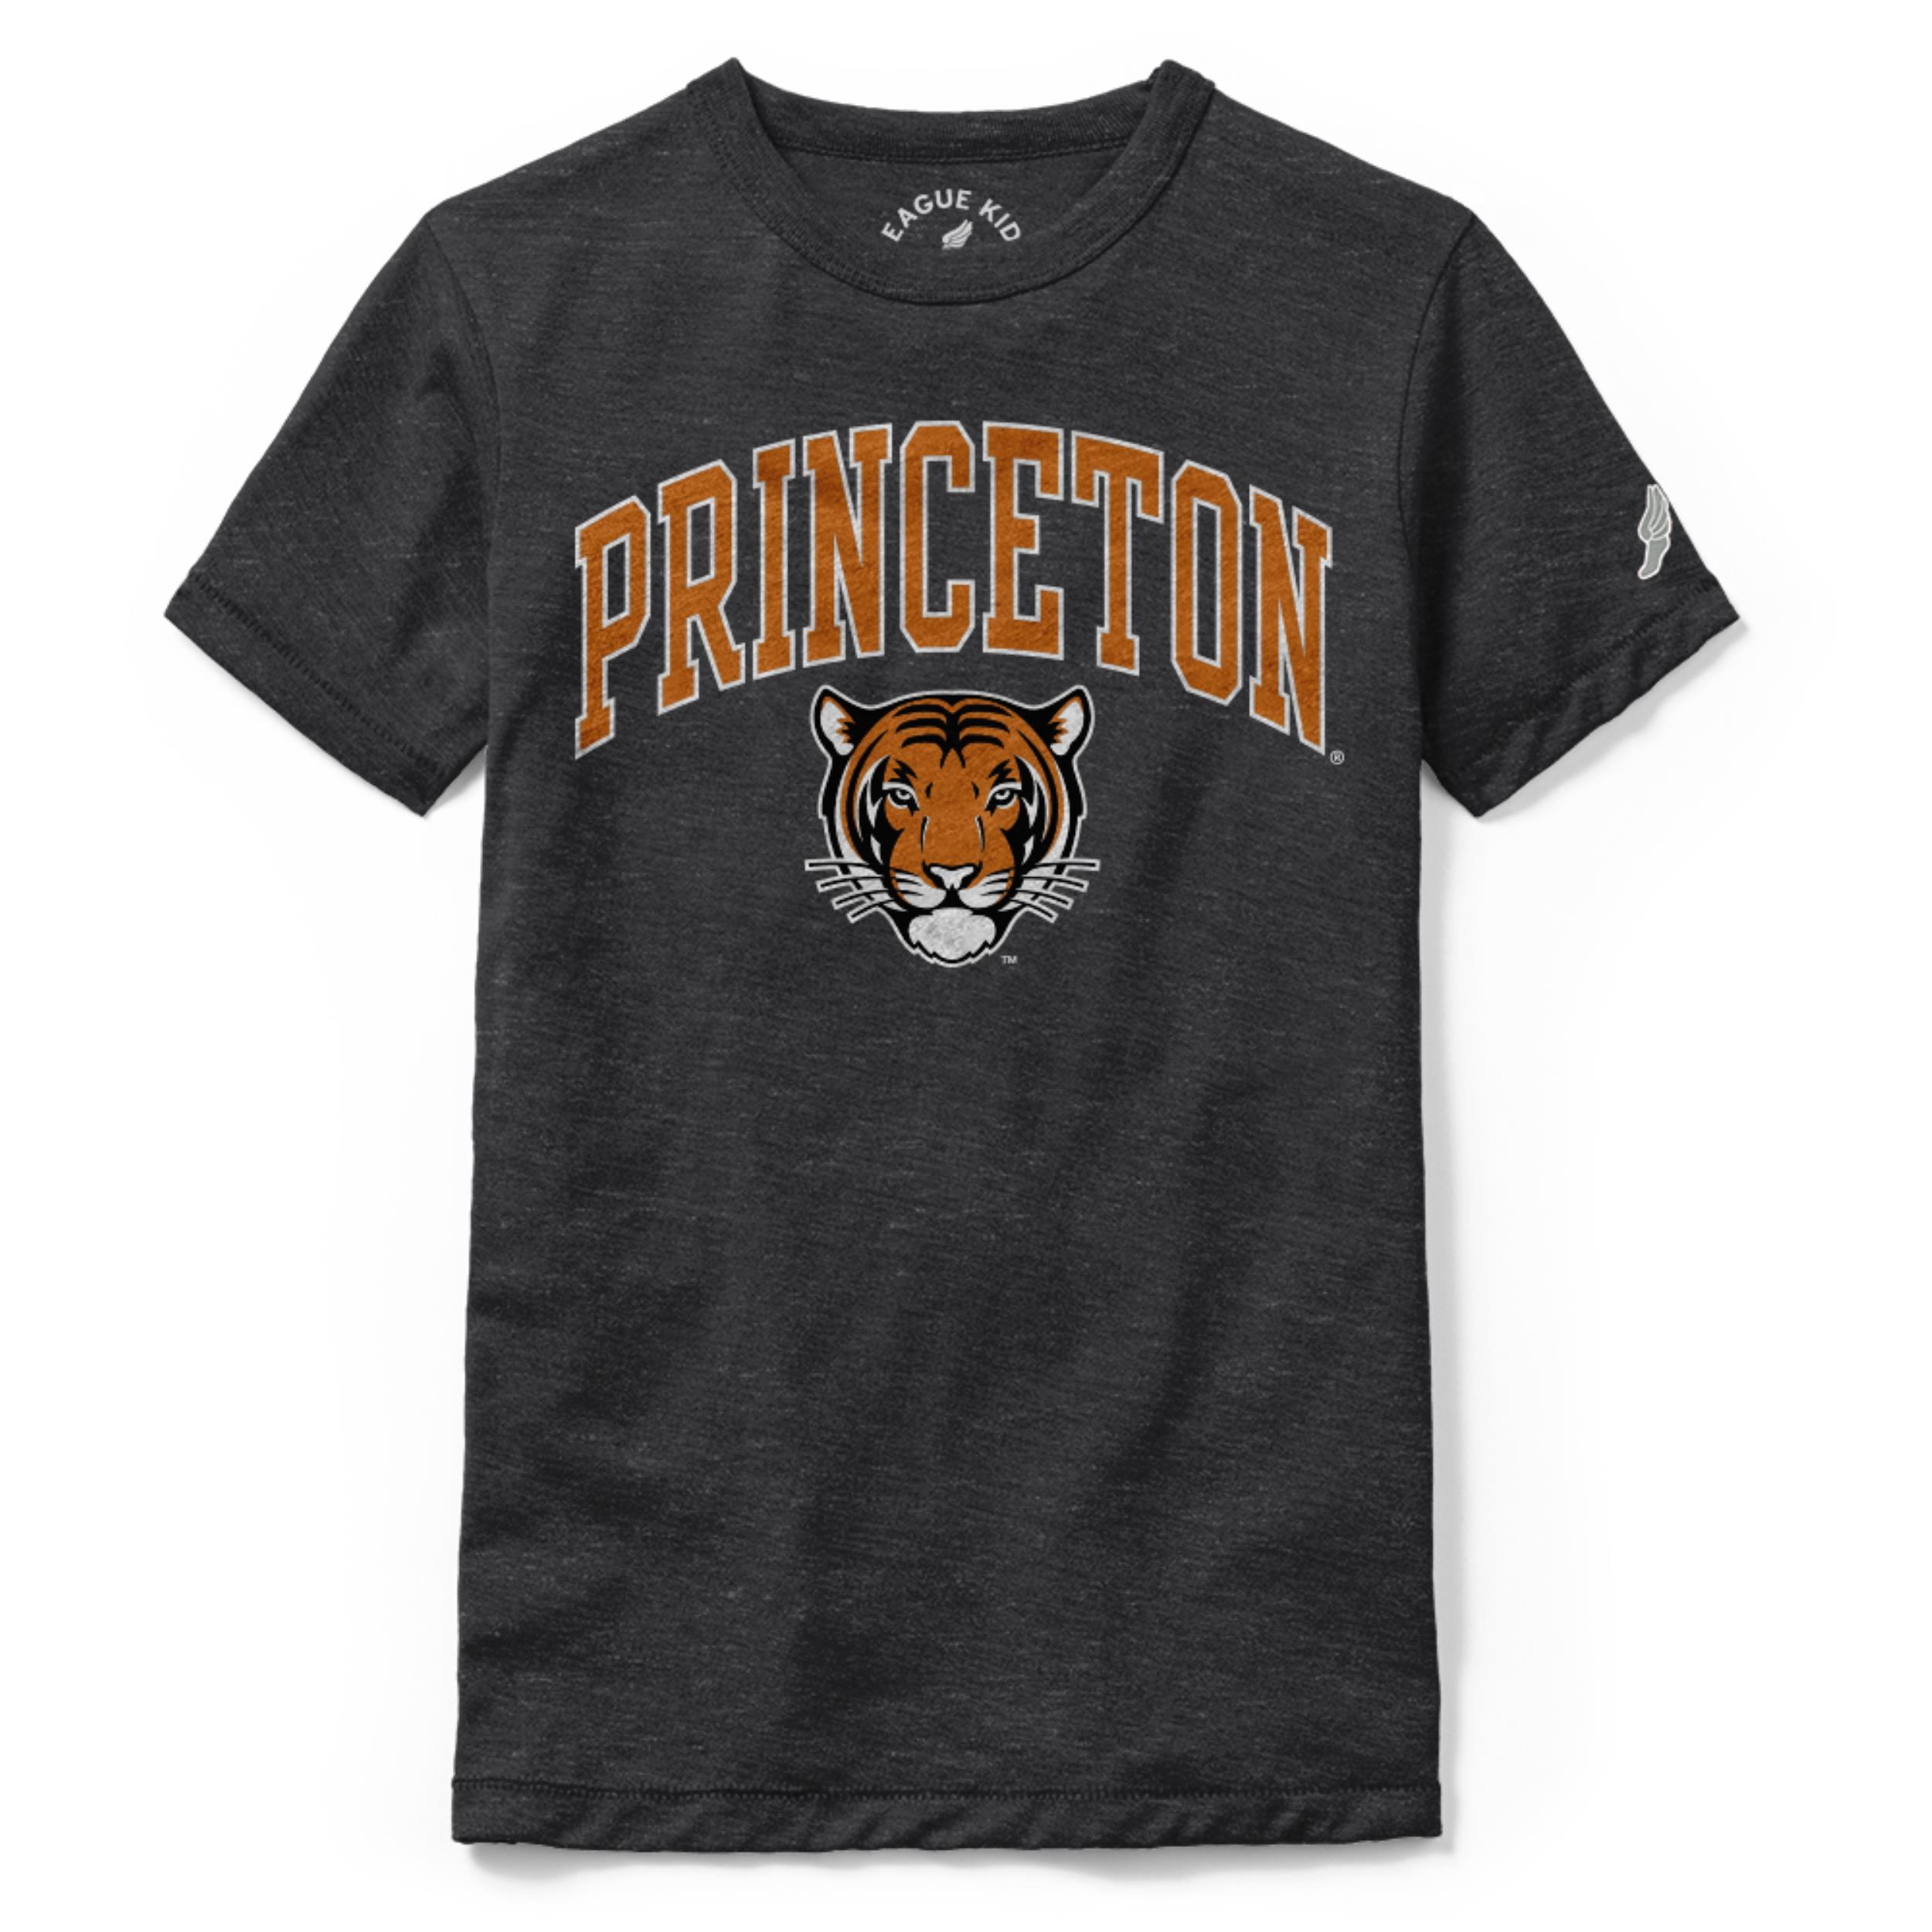 Victory Falls Tee Signature Princeton Youth